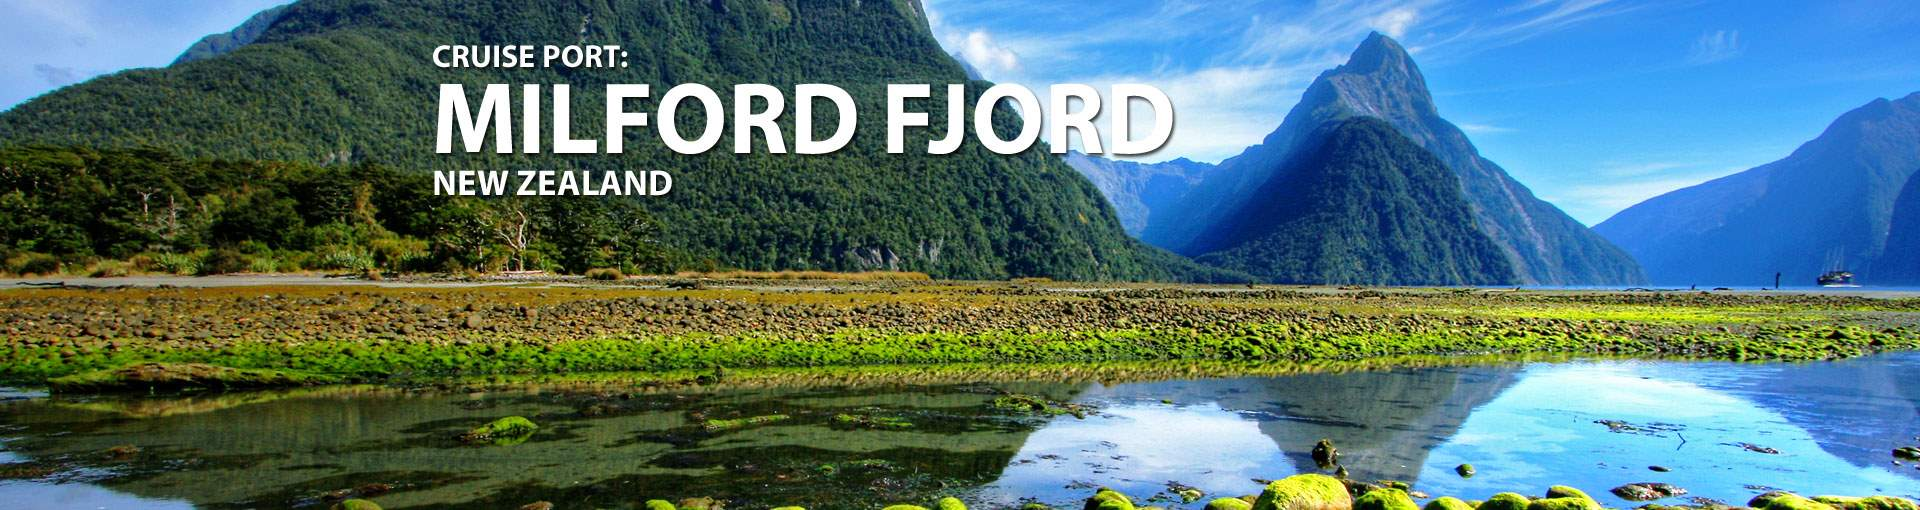 Cruises to Milford Fjord, New Zealand